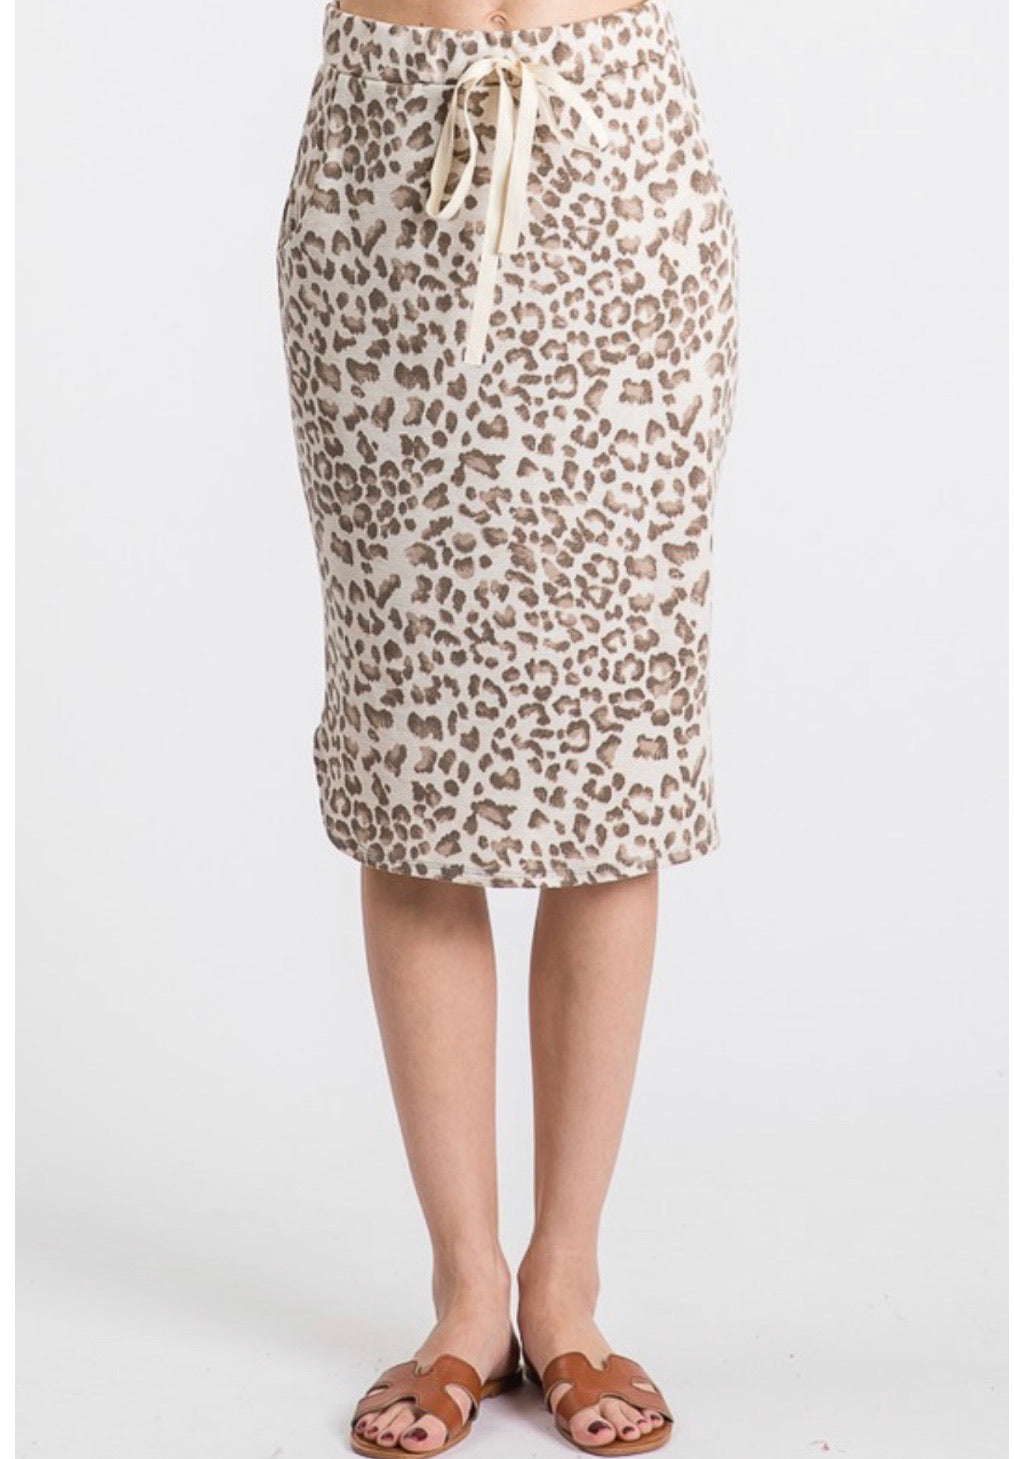 Liza Leopard Drawstring Skirt - Mocha Color - The Darling Style - Modest Dresses